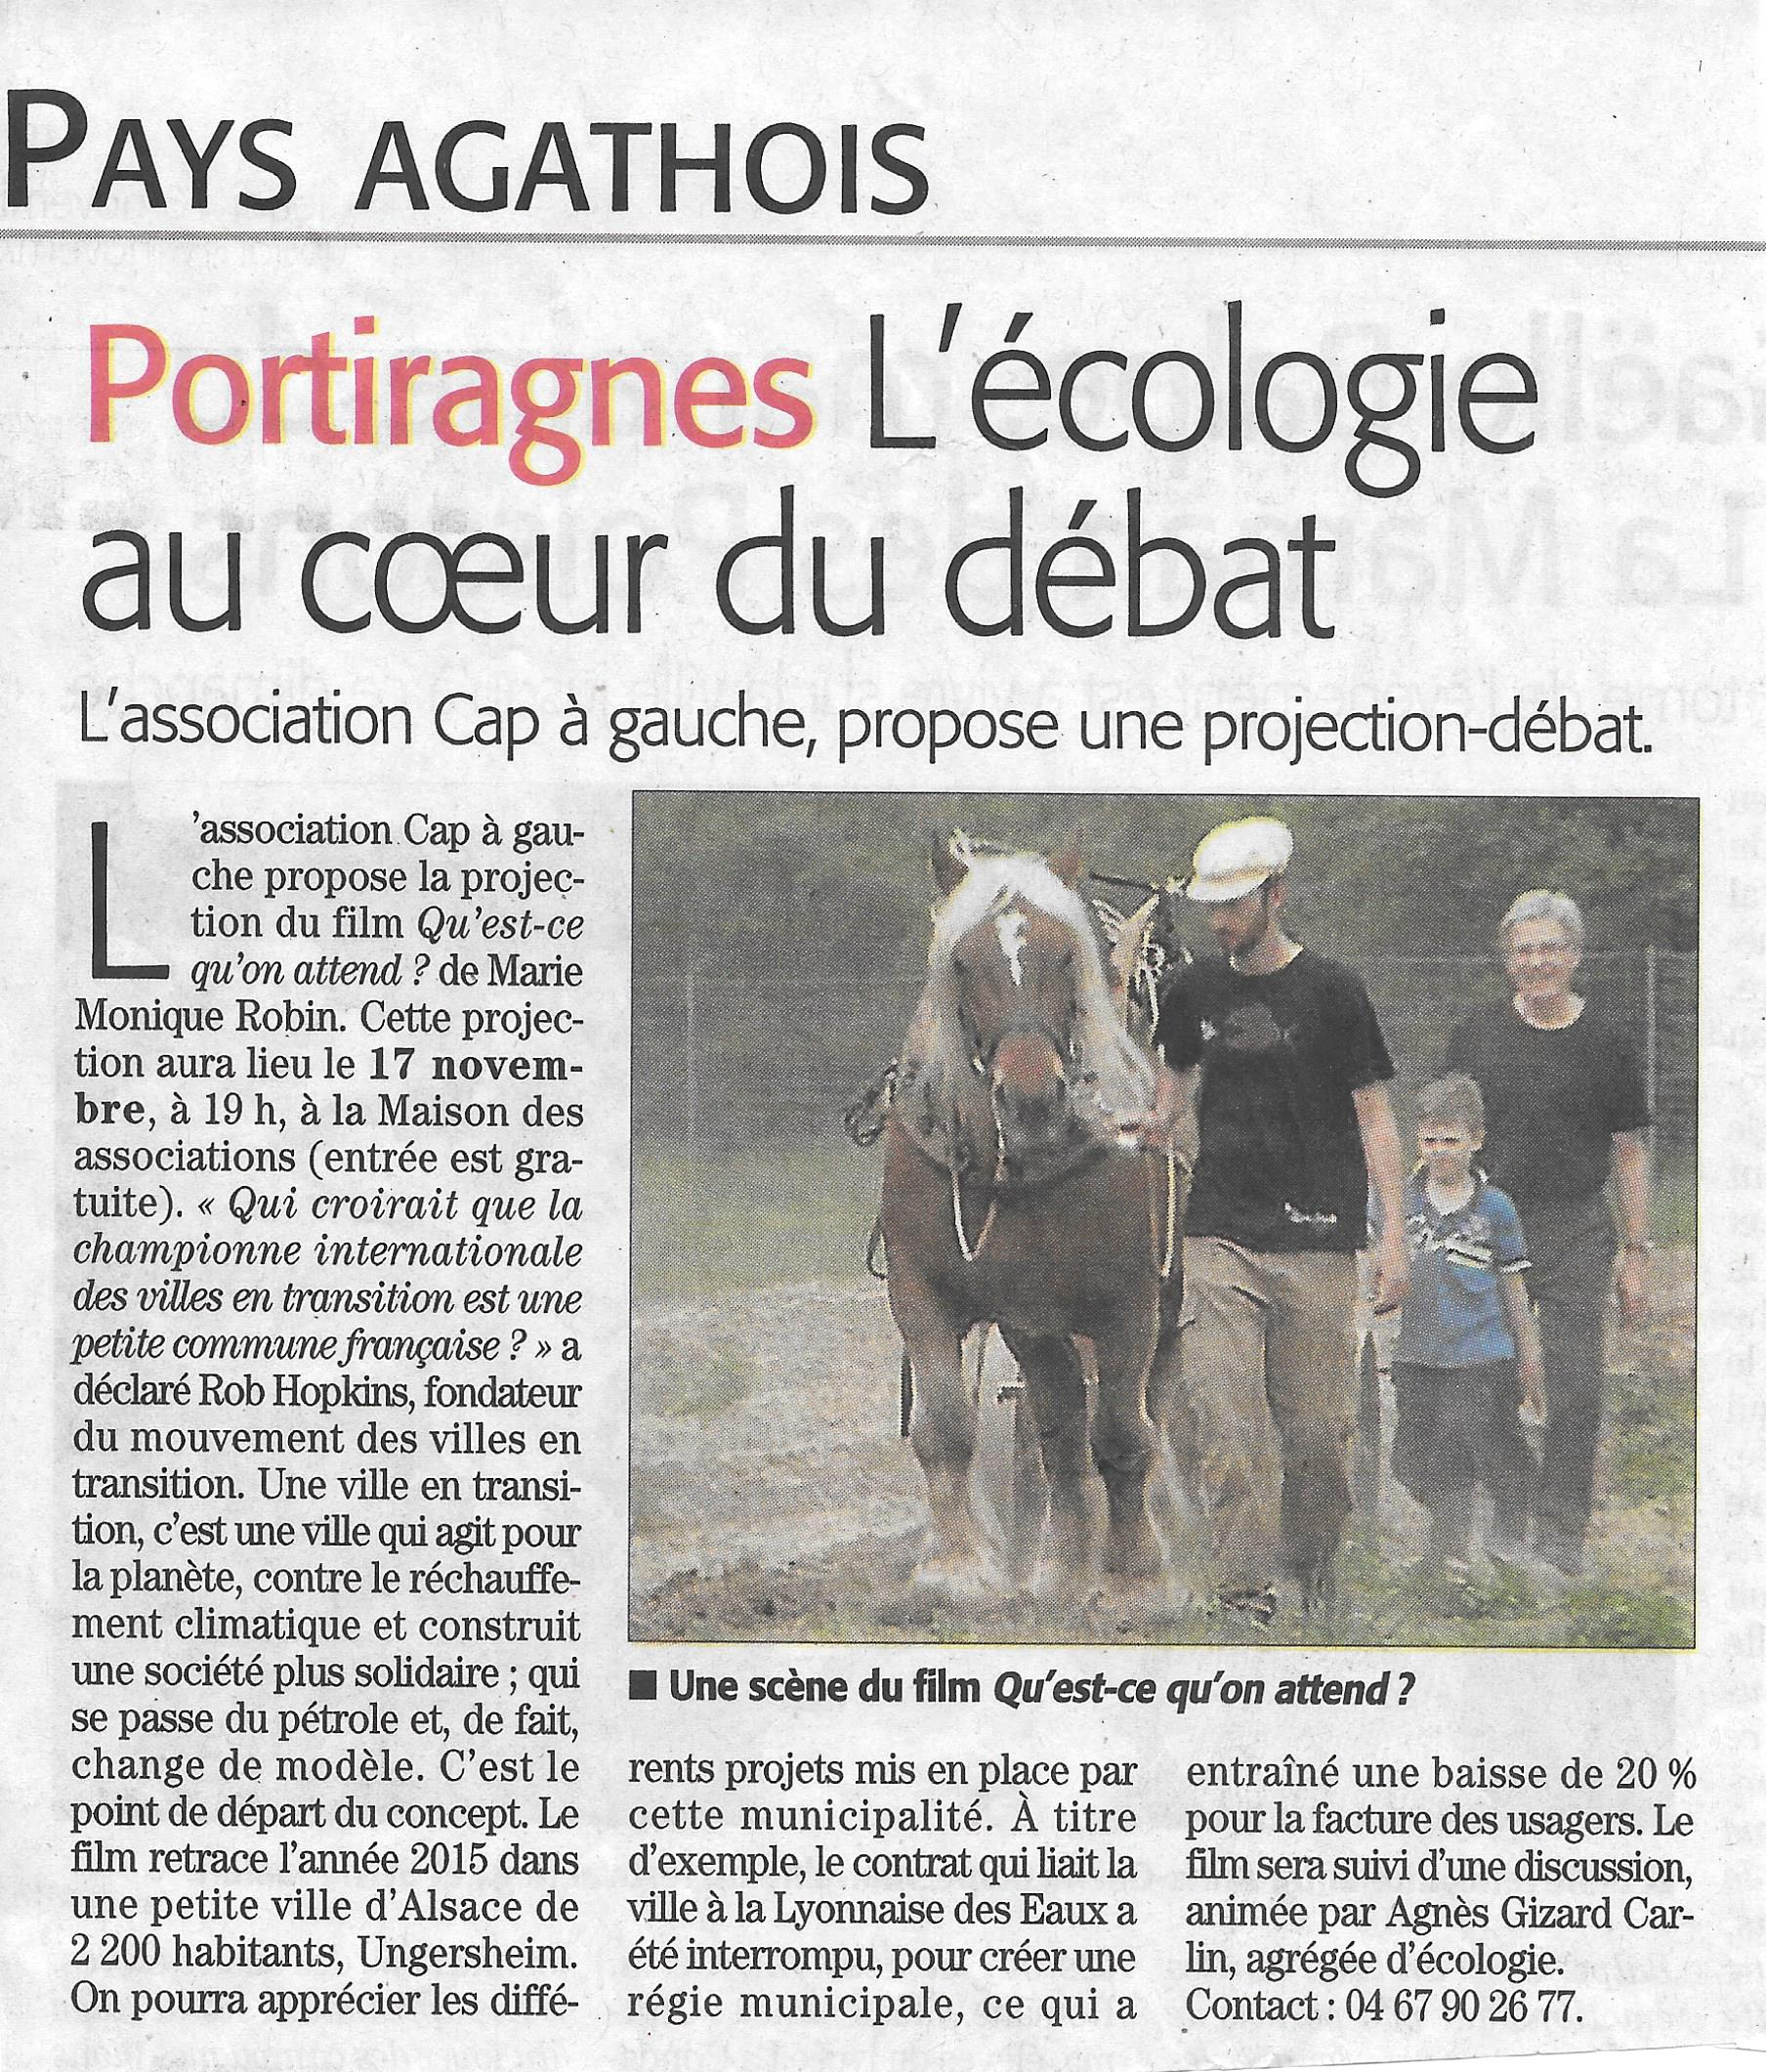 Midi Libre Quest ce quon attend